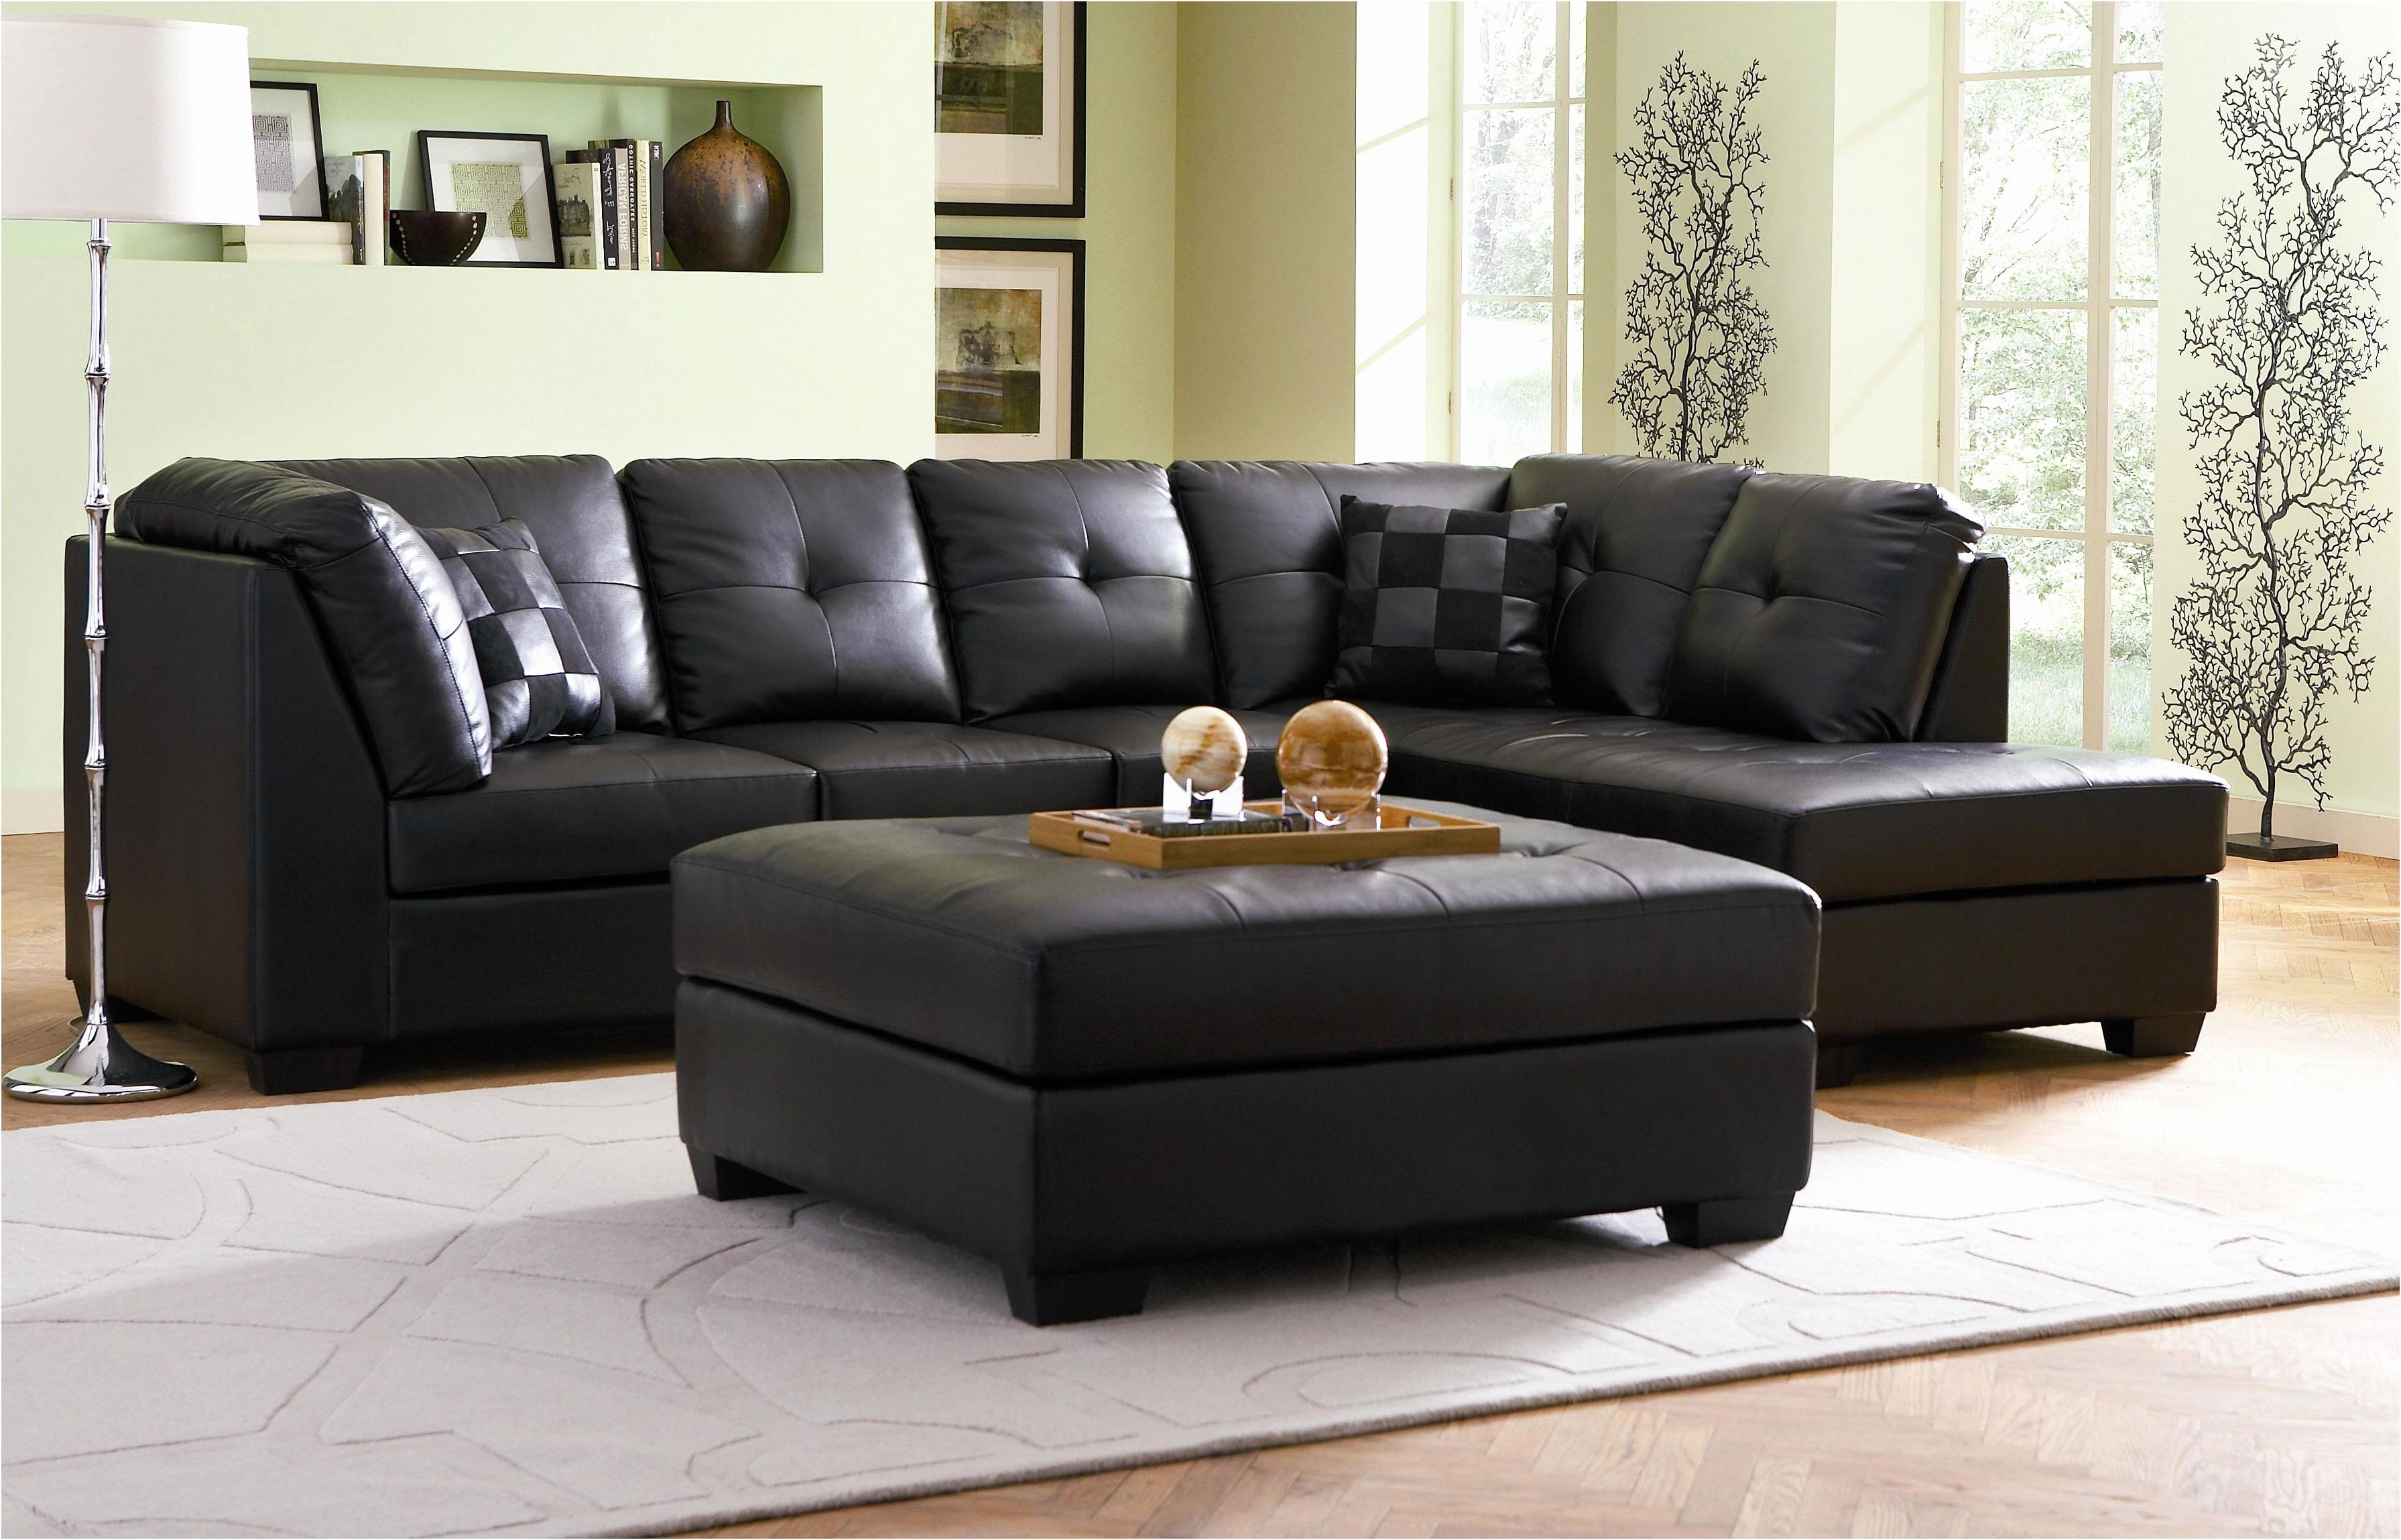 Sofas : Marvelous Black Sectional Sofa Small Sectional Couch Grey Intended For Black Leather Sectional Sleeper Sofas (View 9 of 21)